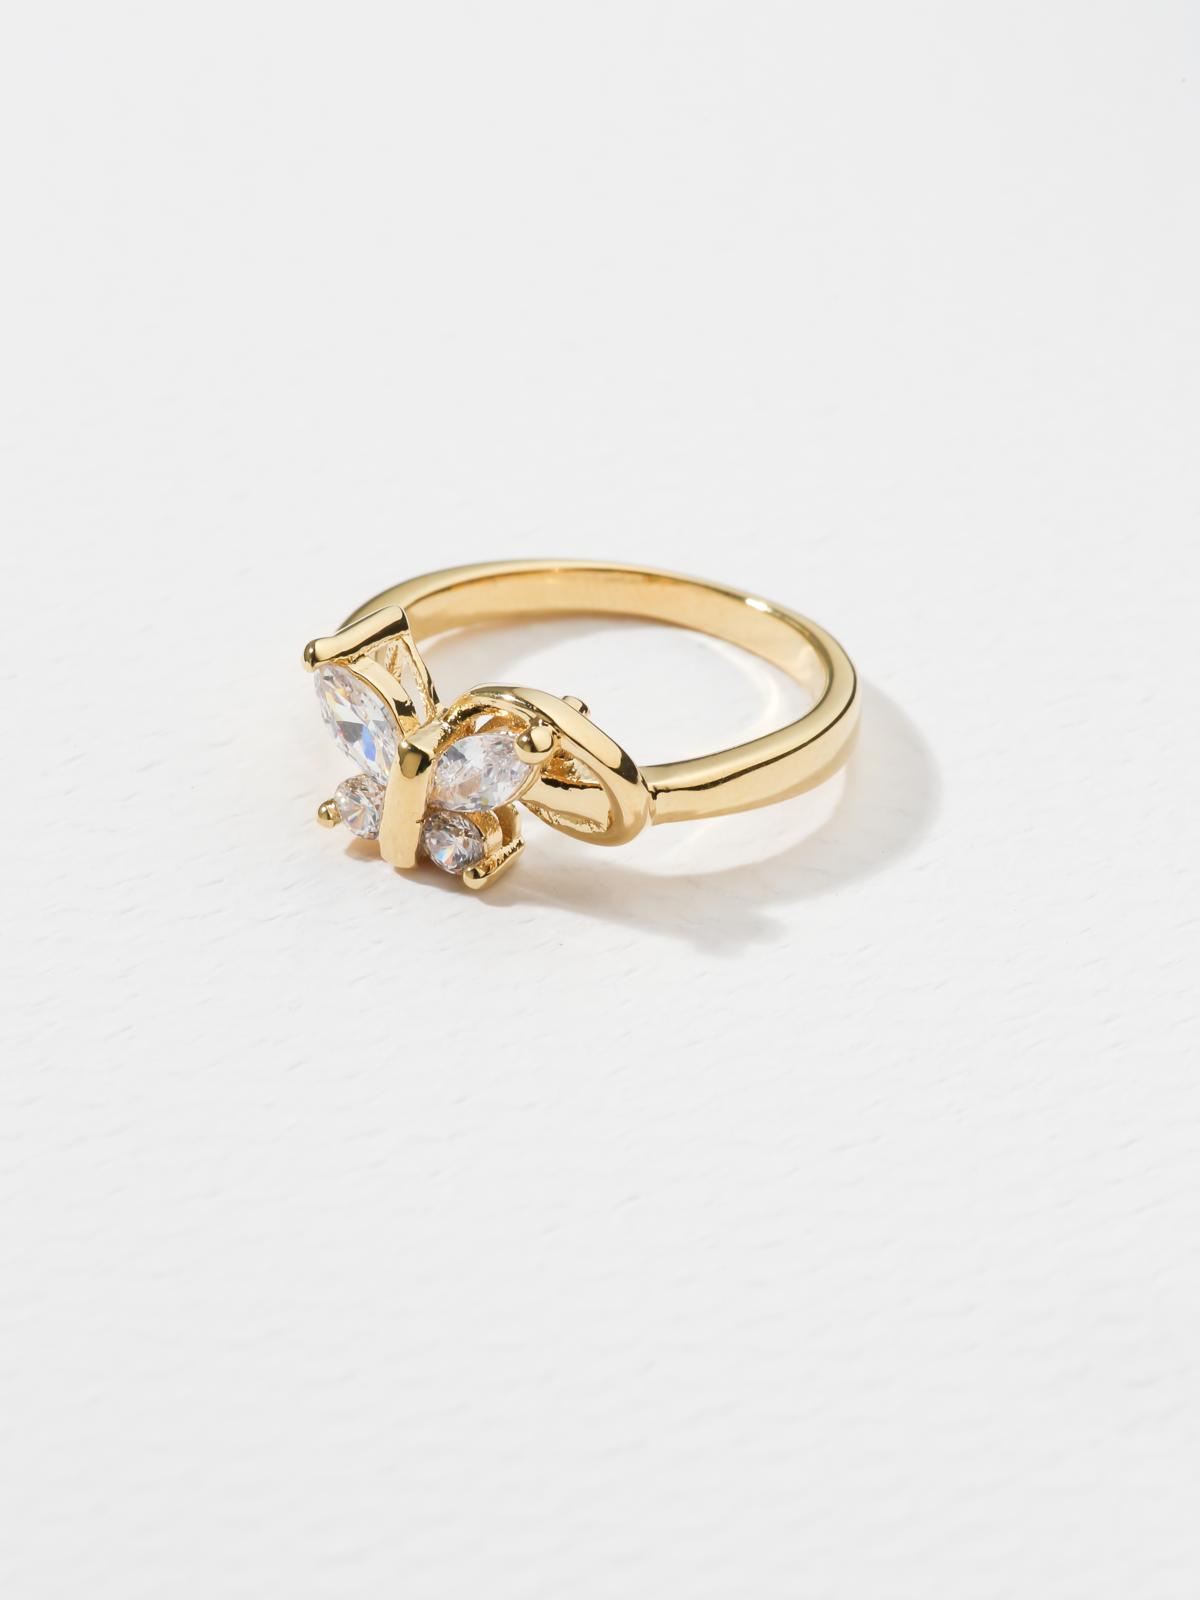 The Daydream Ring